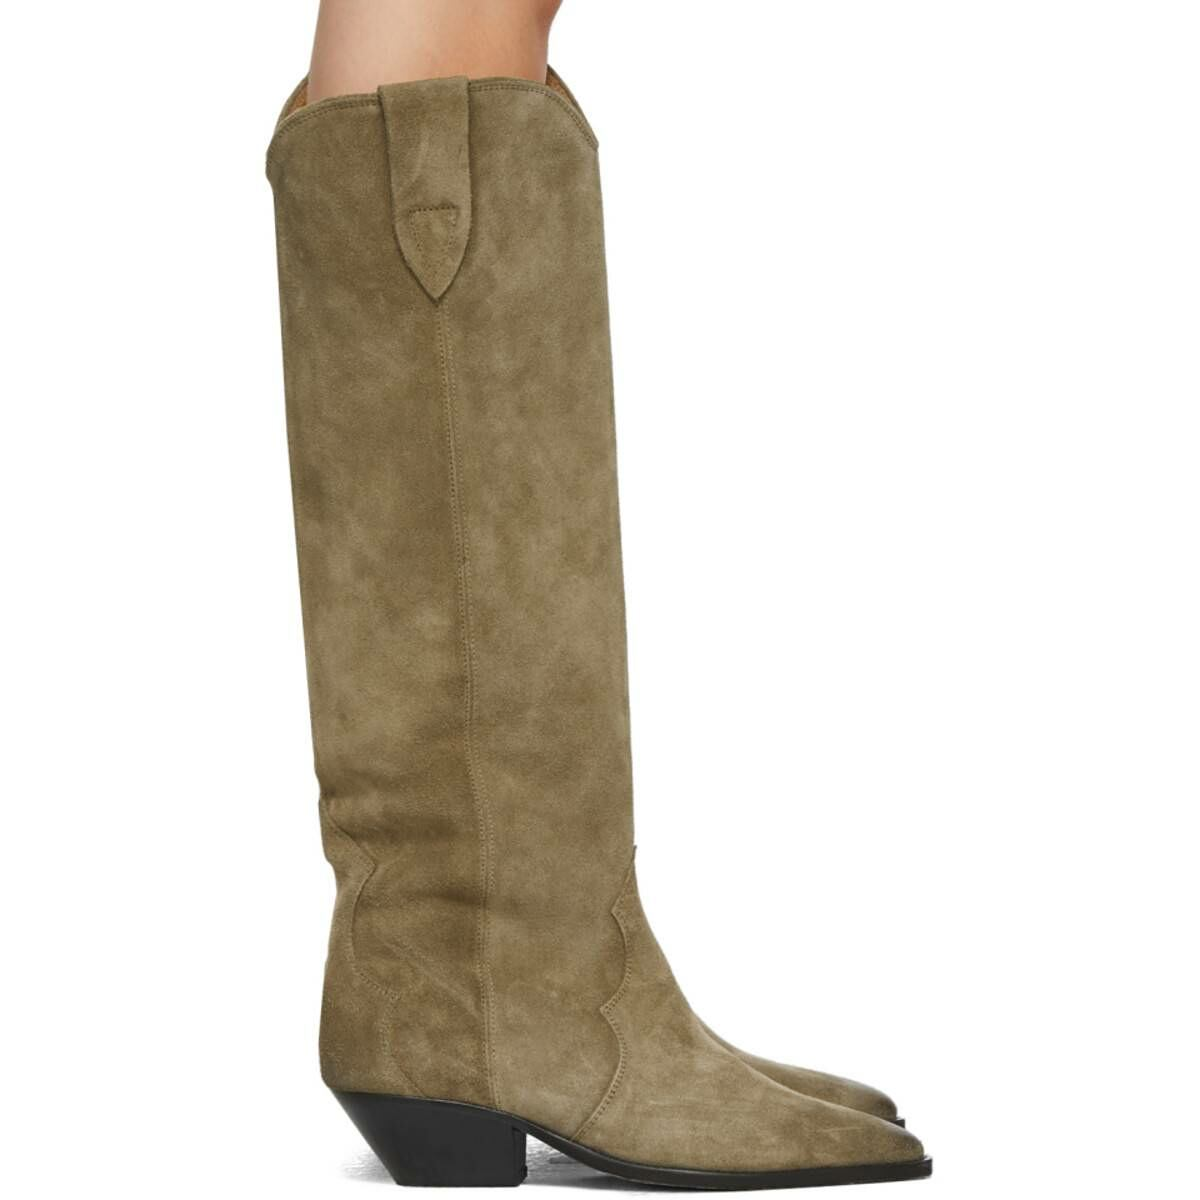 Isabel Marant Taupe Denvee Boots Ssense USA WOMEN Women SHOES Womens BOOTS